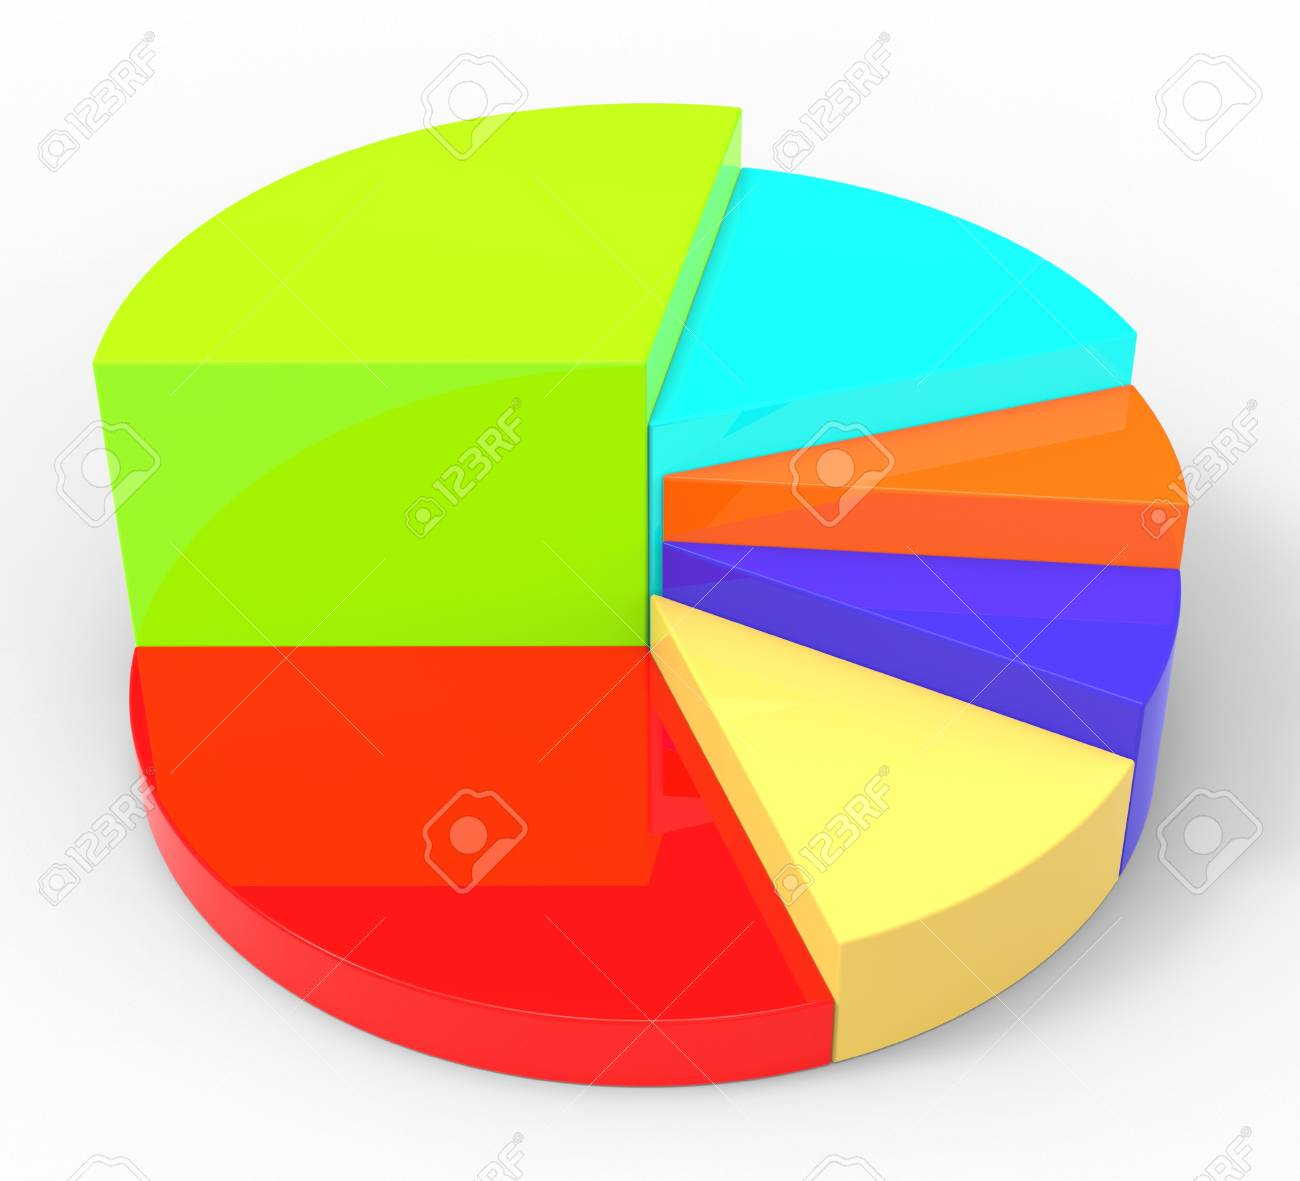 Pie chart meaning business graph and reports stock photo picture pie chart meaning business graph and reports stock photo 40542381 ccuart Image collections